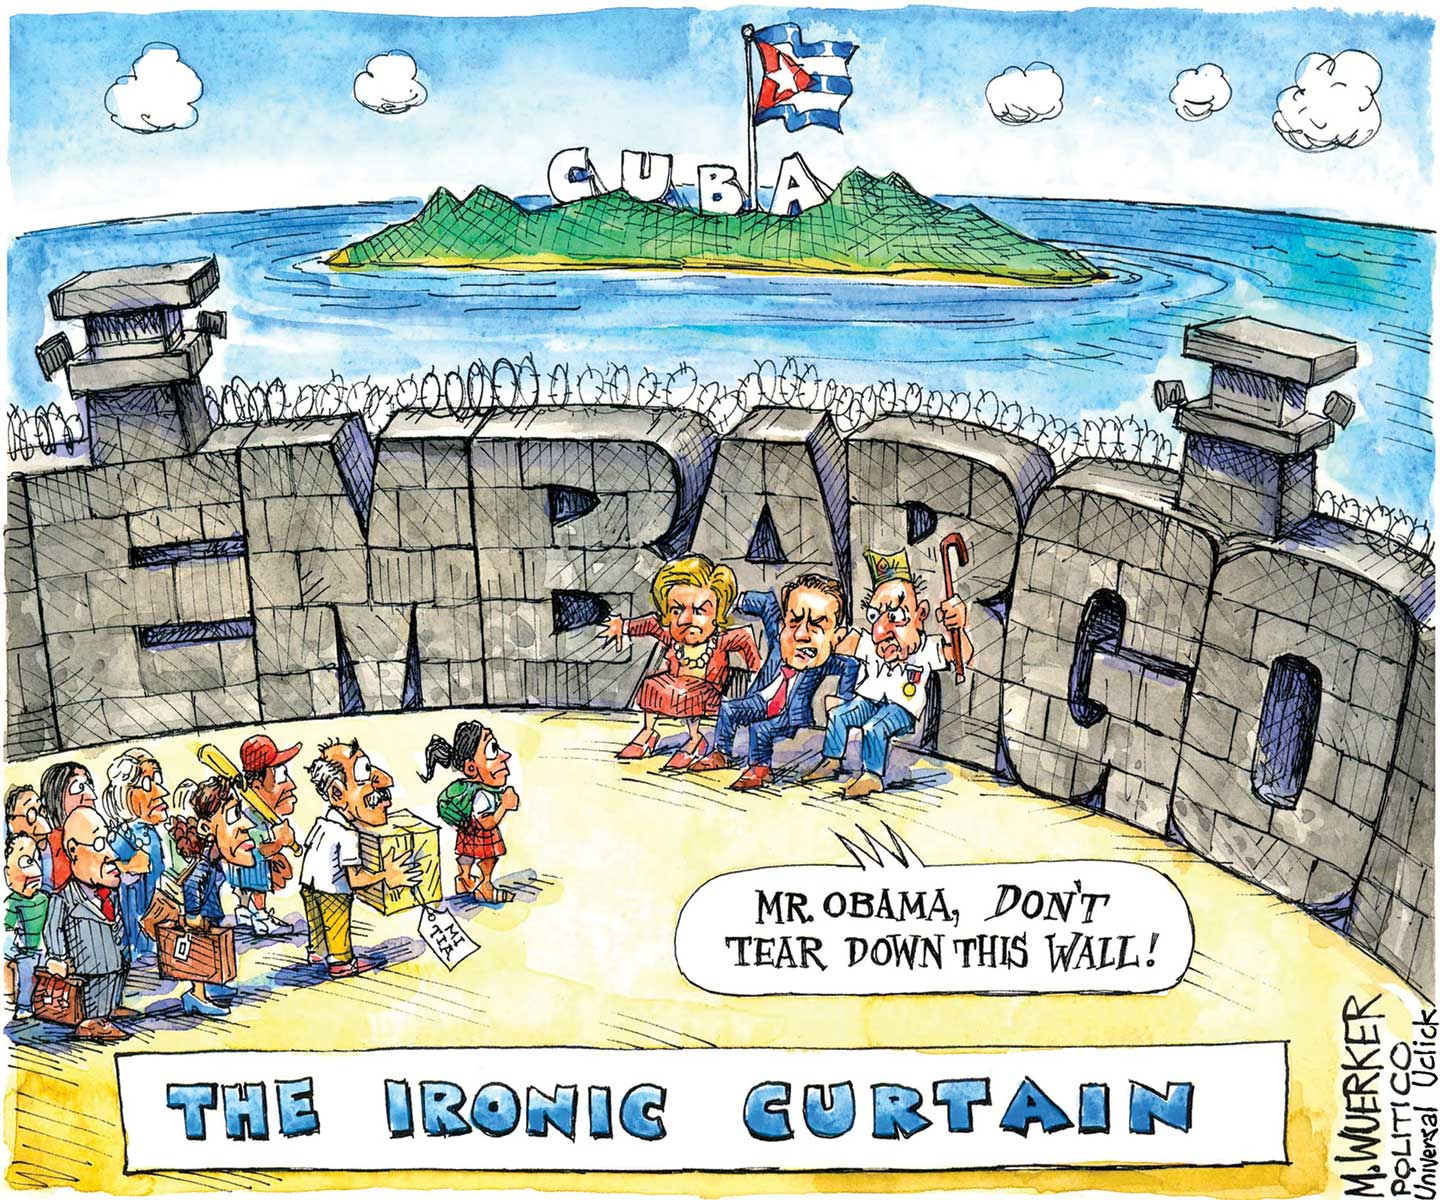 Iron curtain political cartoon - Why Us Cuba Normalization Is Accelerating